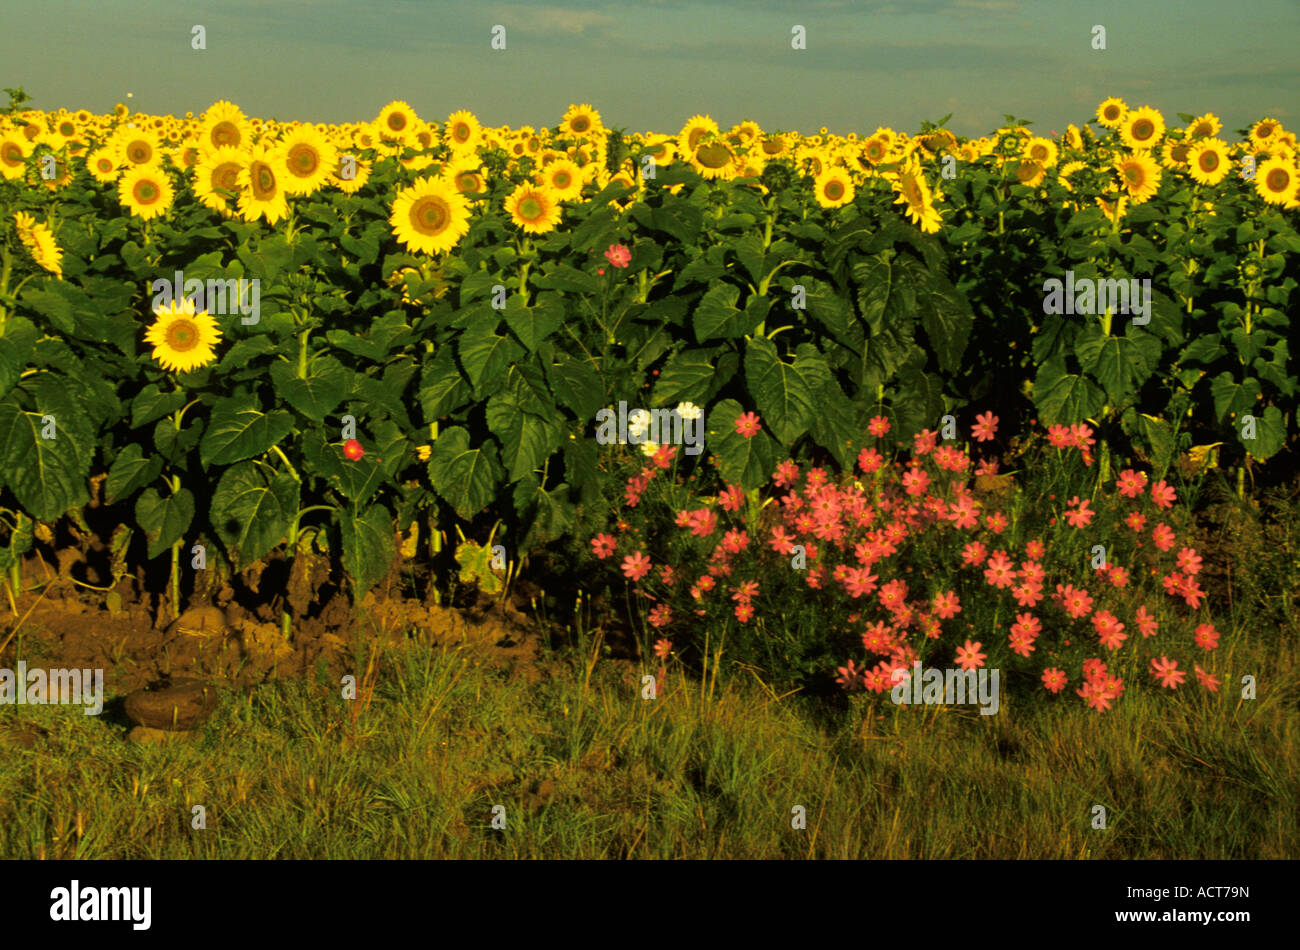 Field Of Sunflowers With Clump Of Pink Flowers In The Foreground